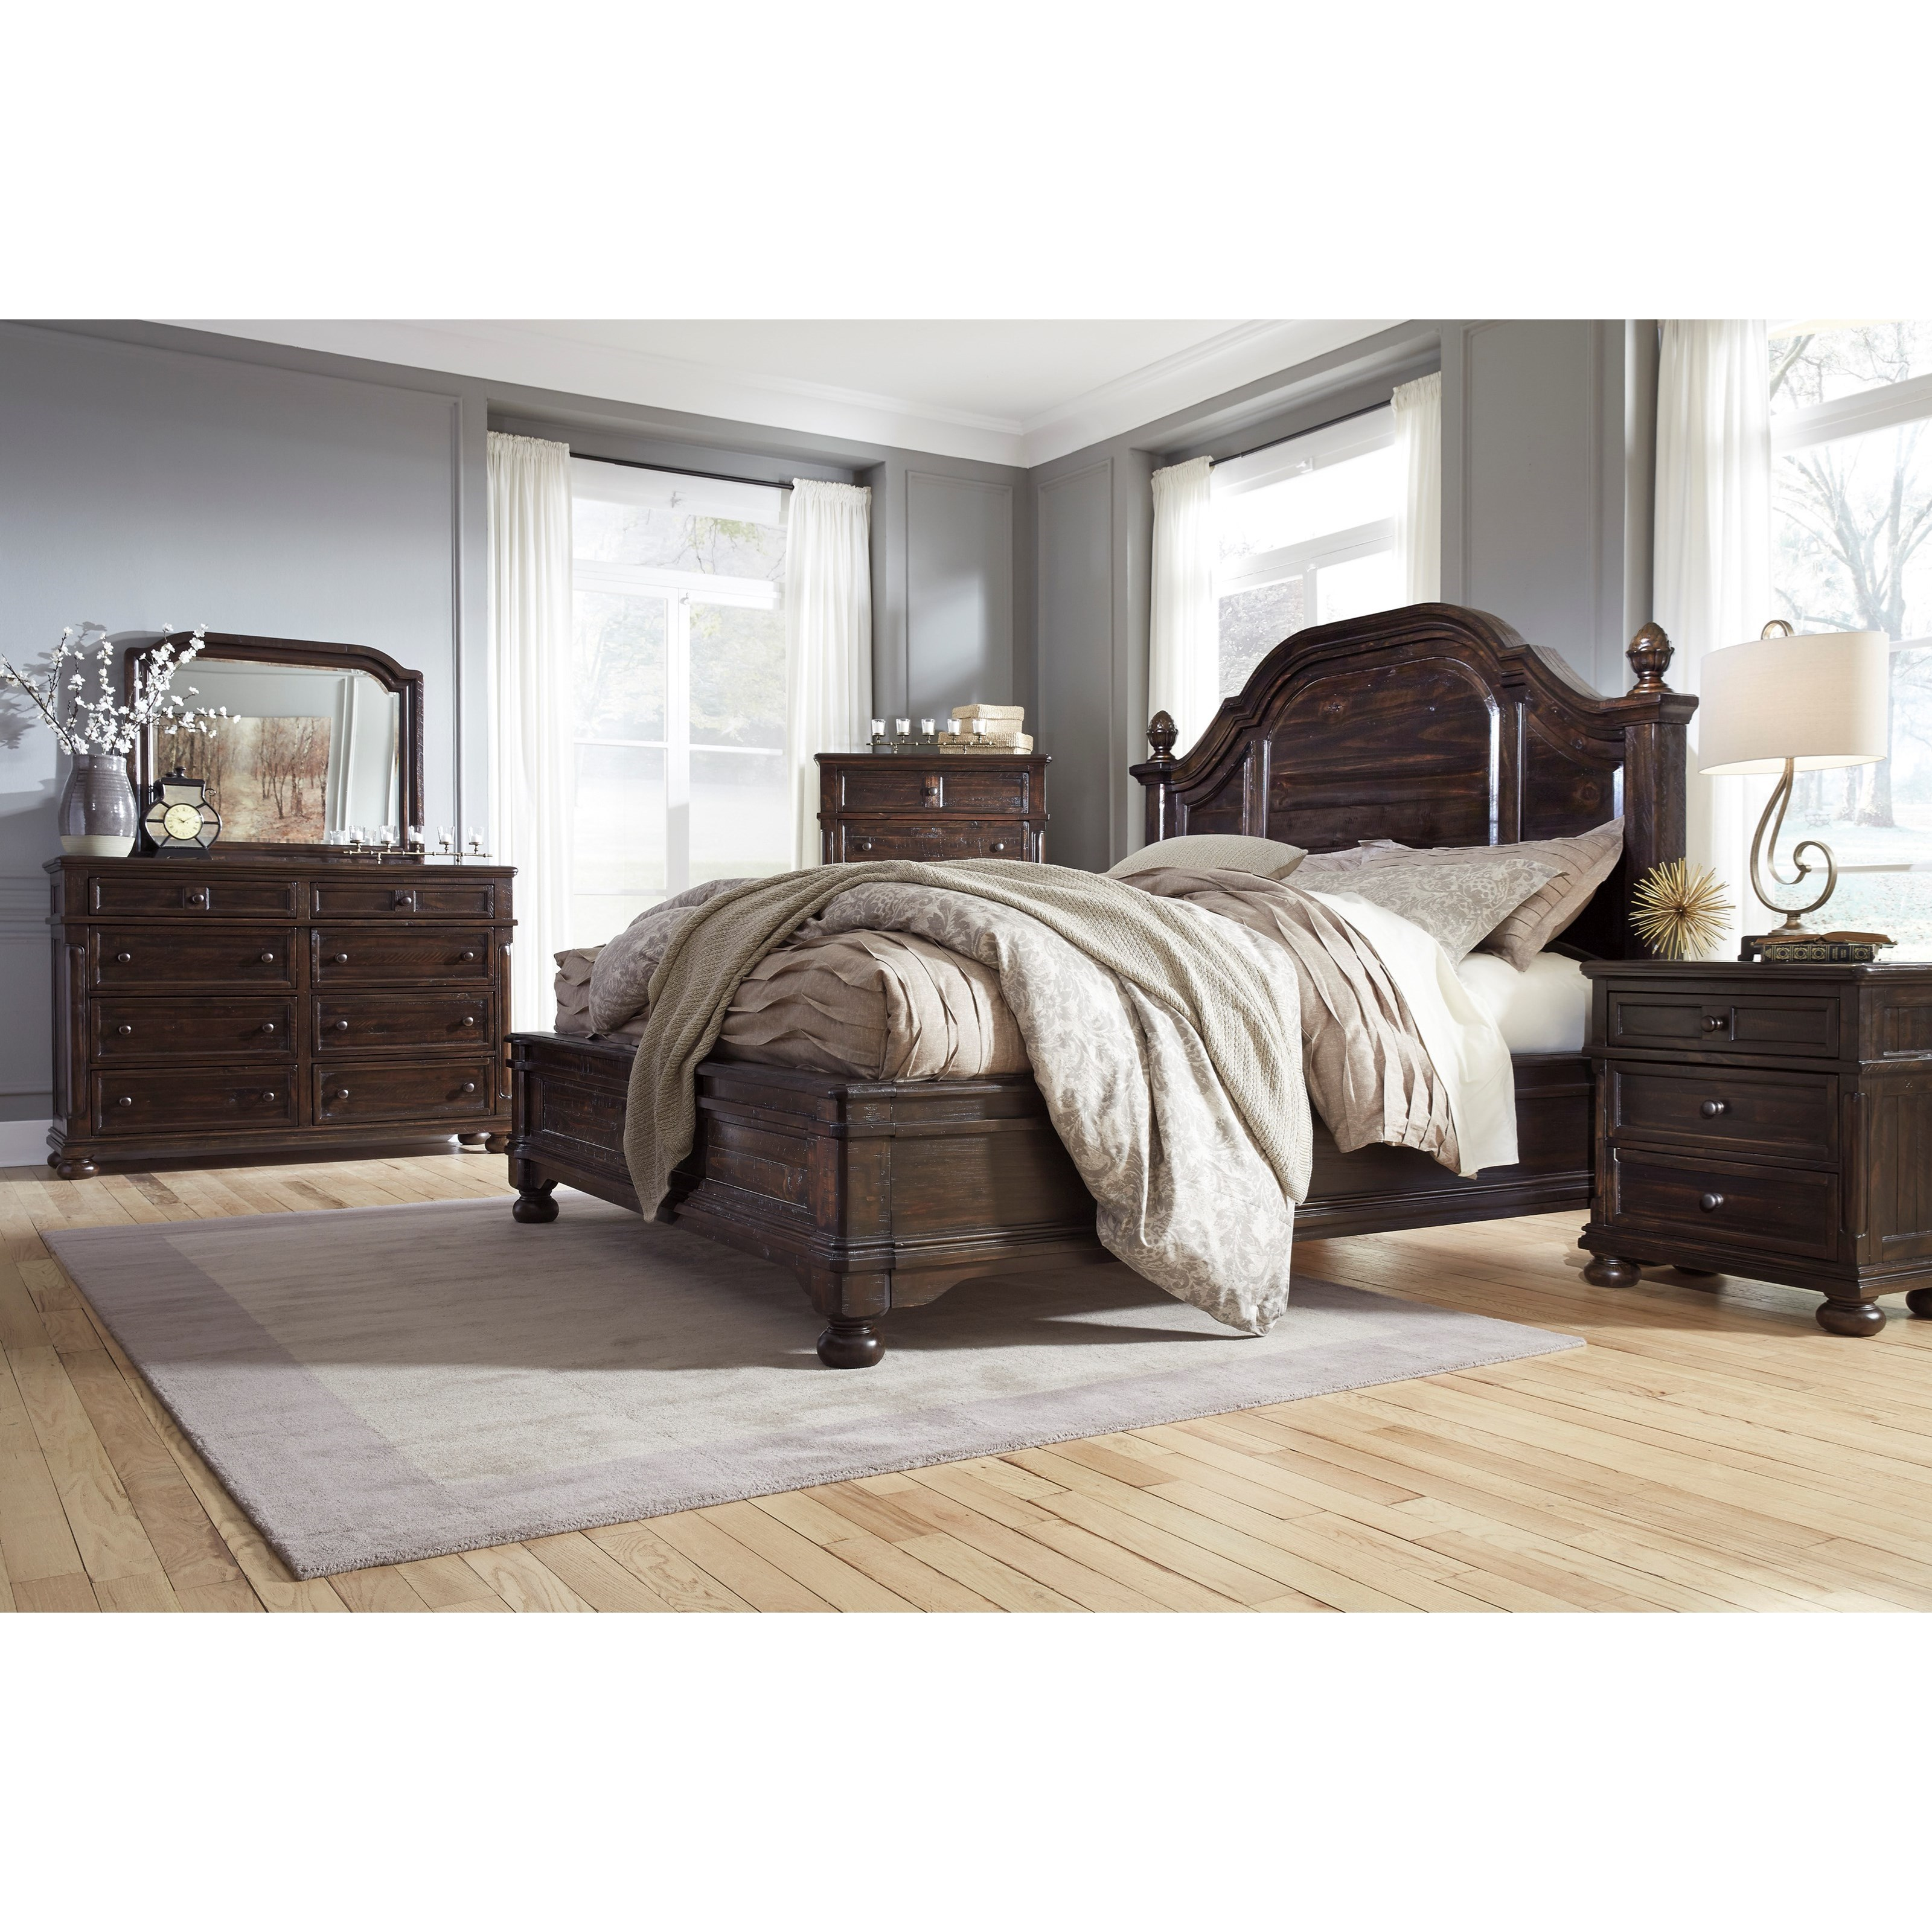 Signature design by ashley gerlane queen bedroom group for Bedroom furniture companies